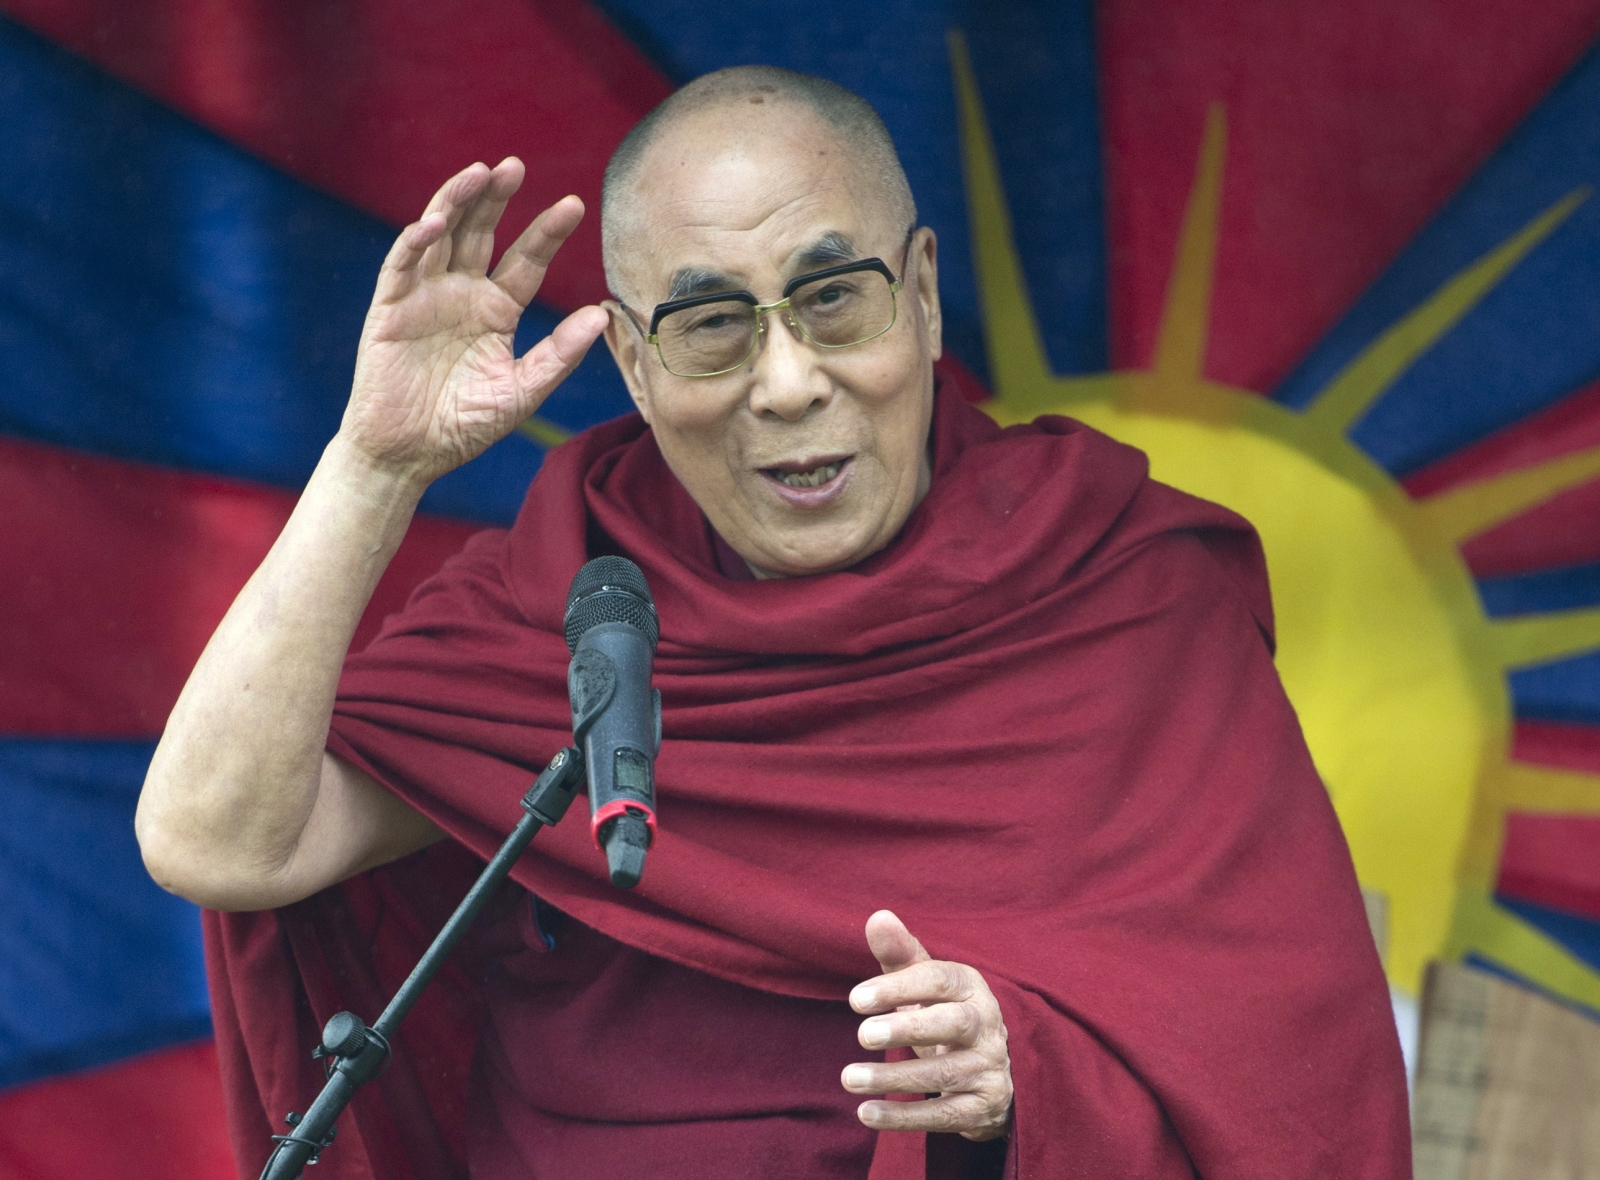 The Dalai Lama addresses the crowd